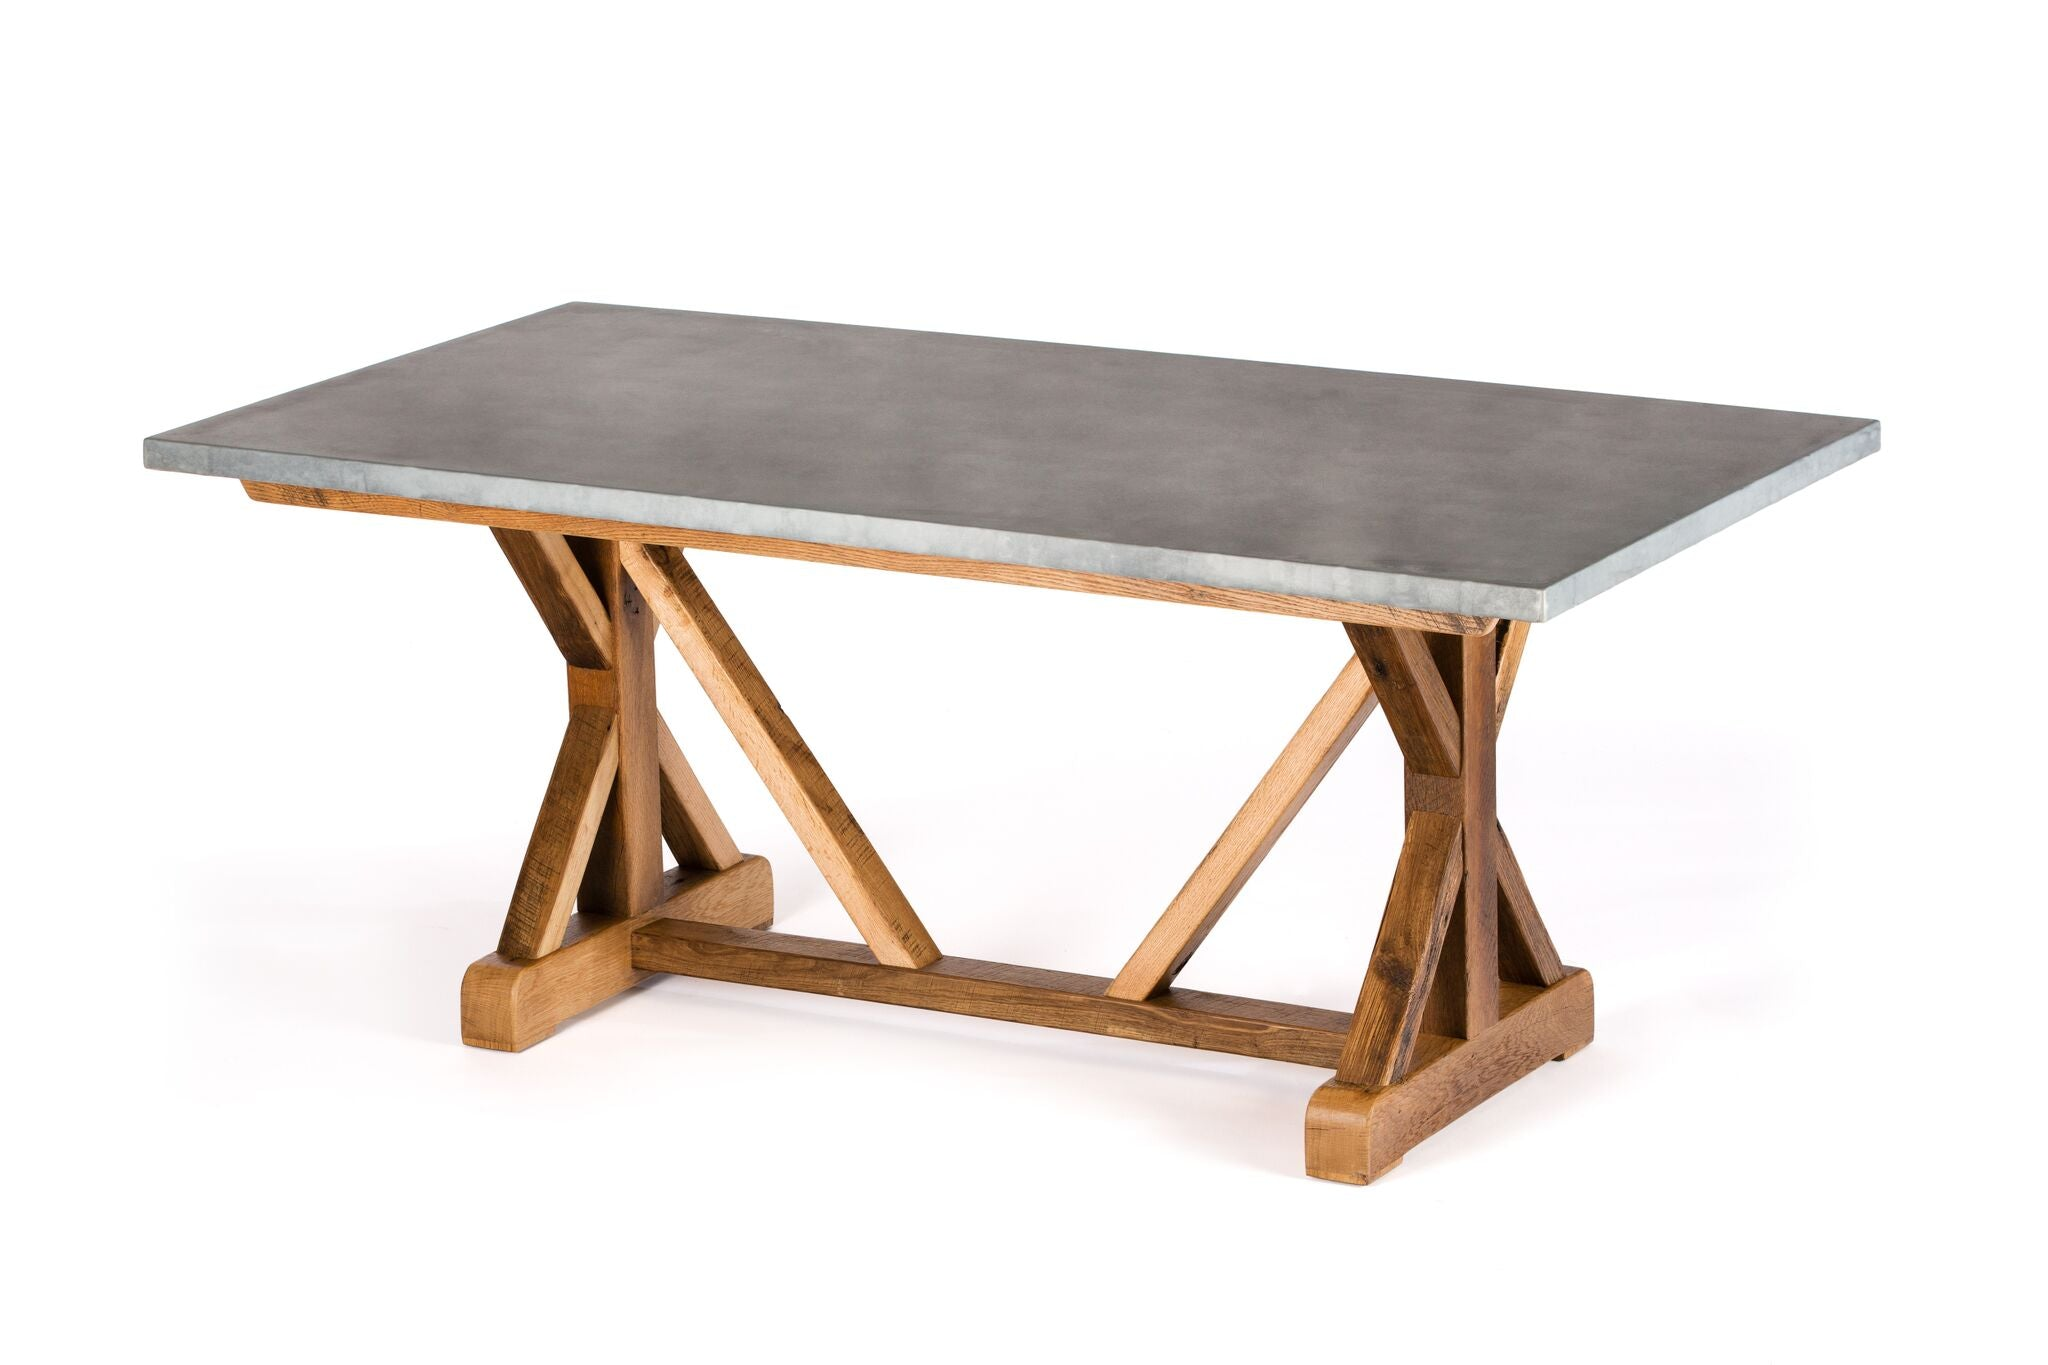 "Zinc Rectangular Table | French Trestle Table | CLASSIC | White Wash on Reclaimed Oak | 84""L 39""W 30""H 